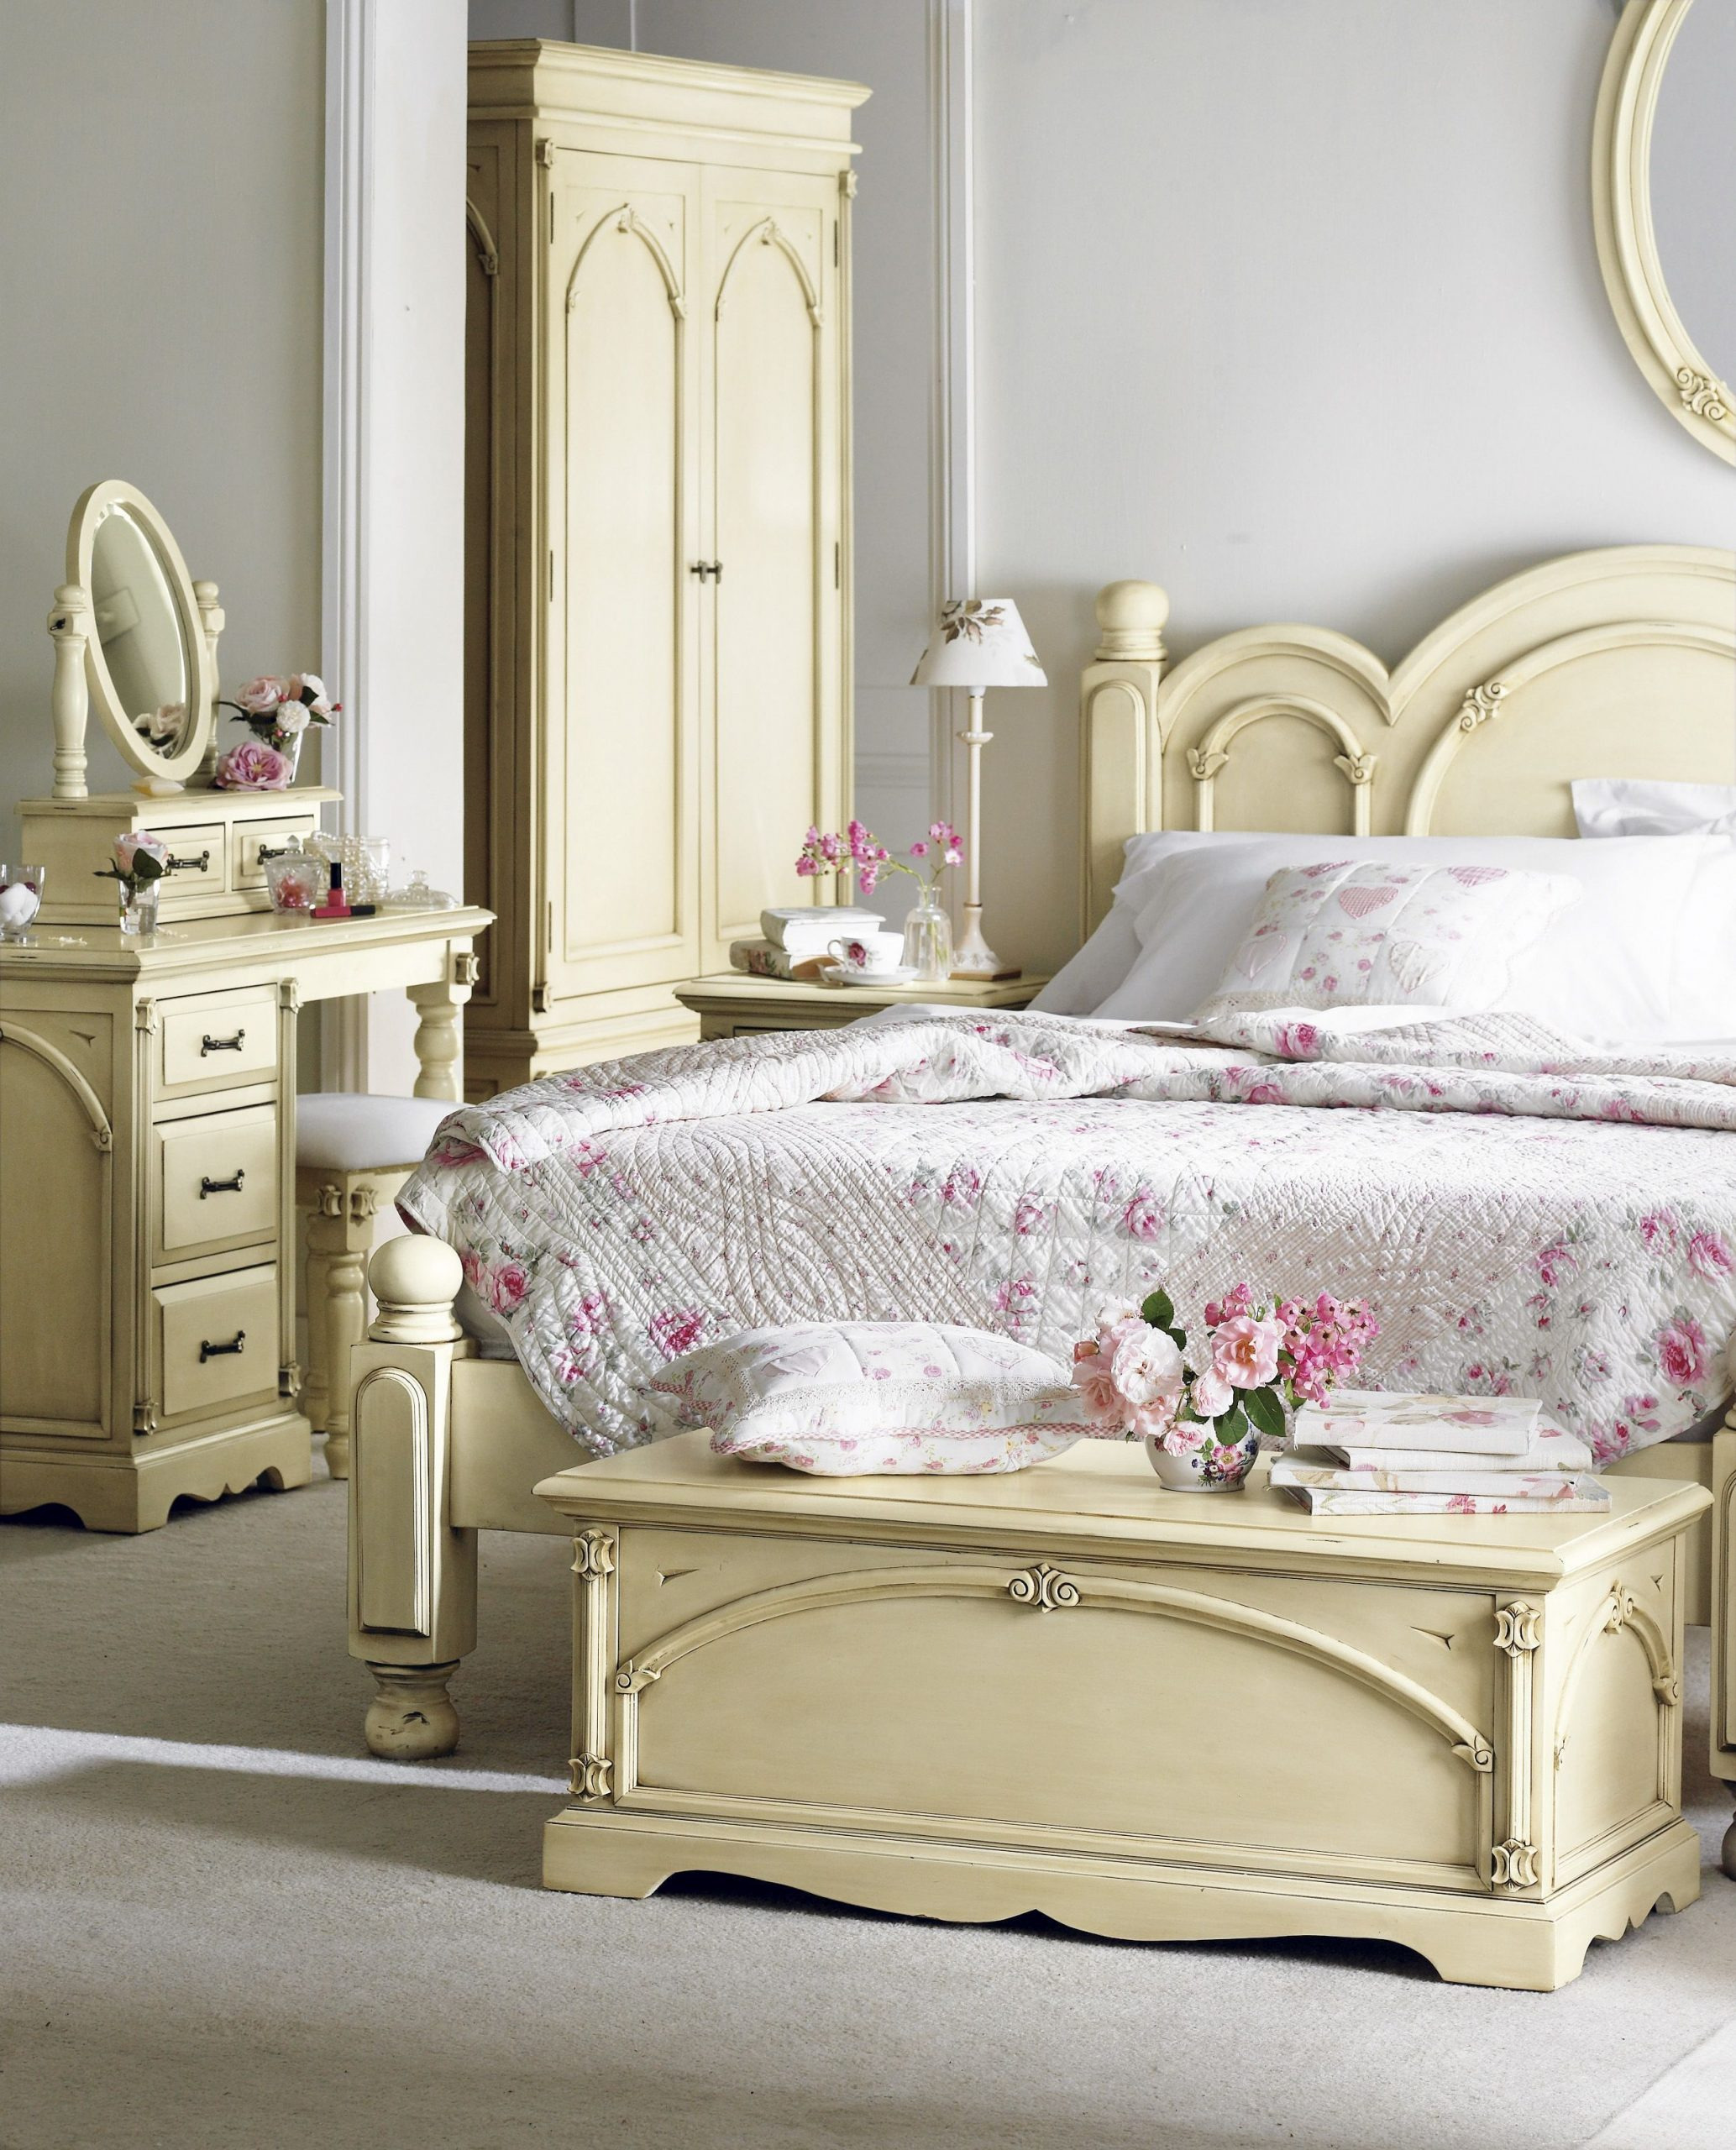 French Antique Bedroom Furniture Inspirational Bedroom Best Shabby Chic Bedrooms Modern Decorating